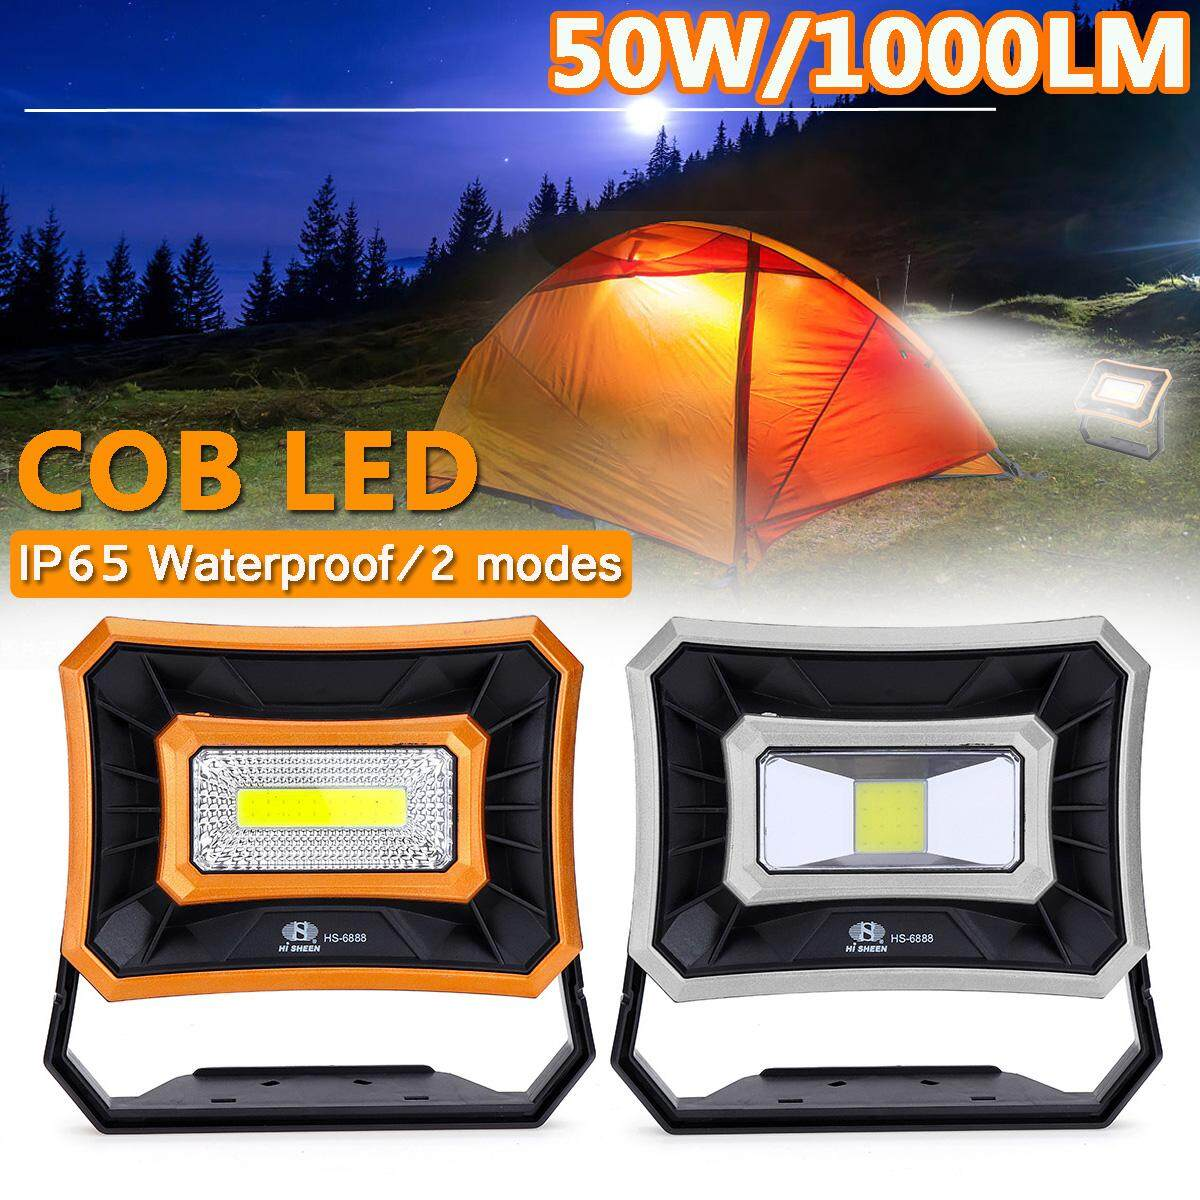 【Free Shipping + Flash Deal】50W/1000LM Portable LED COB Work Light Torch Spotlight Floodlight Lamp Camping